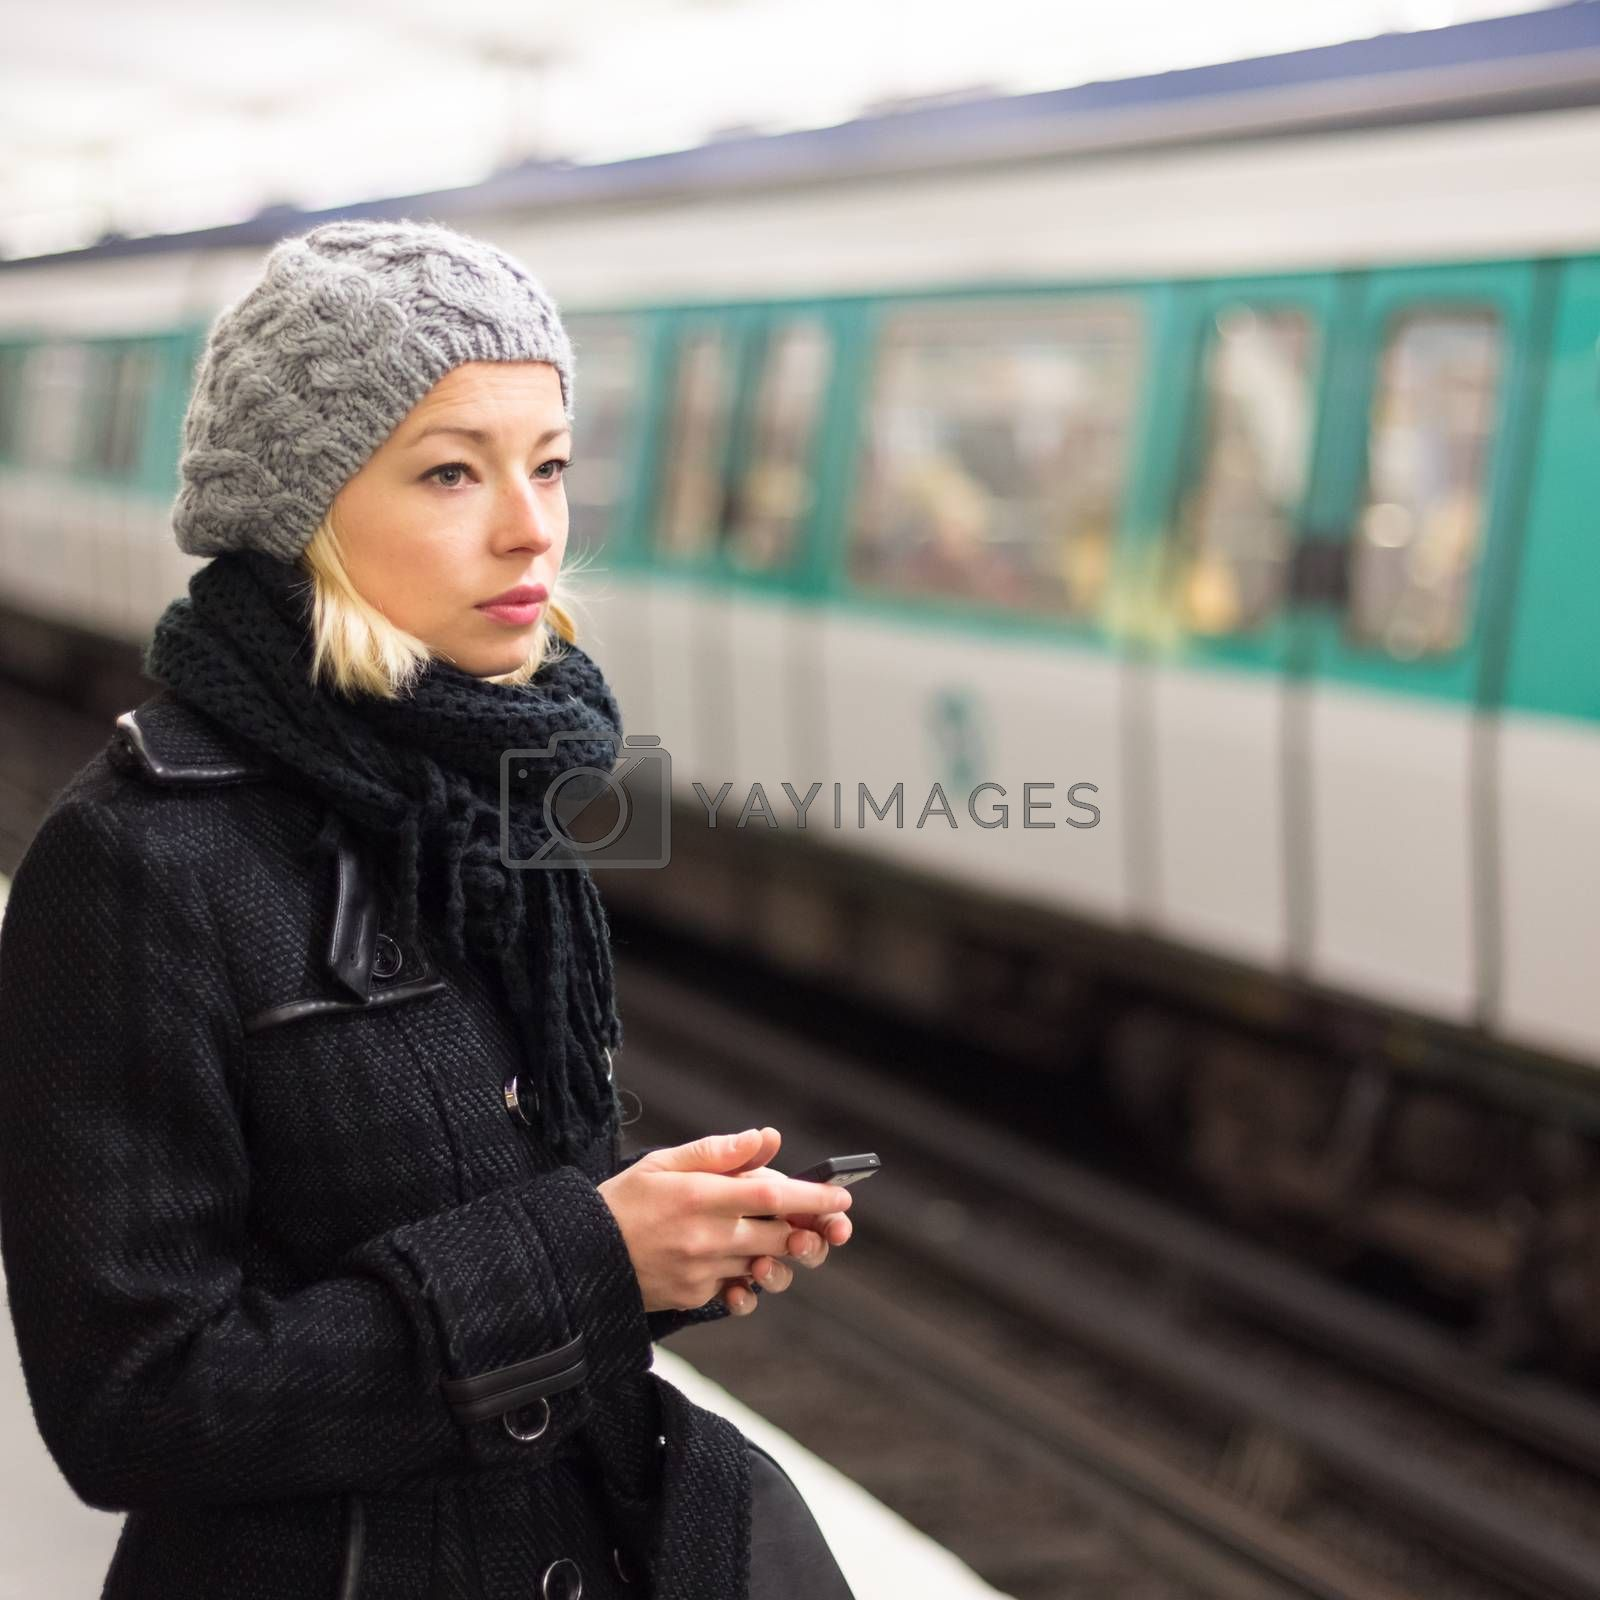 Young woman in winter coat with a cell phone in her hand waiting on the platform of a railway station for train to arrive. Public transport.